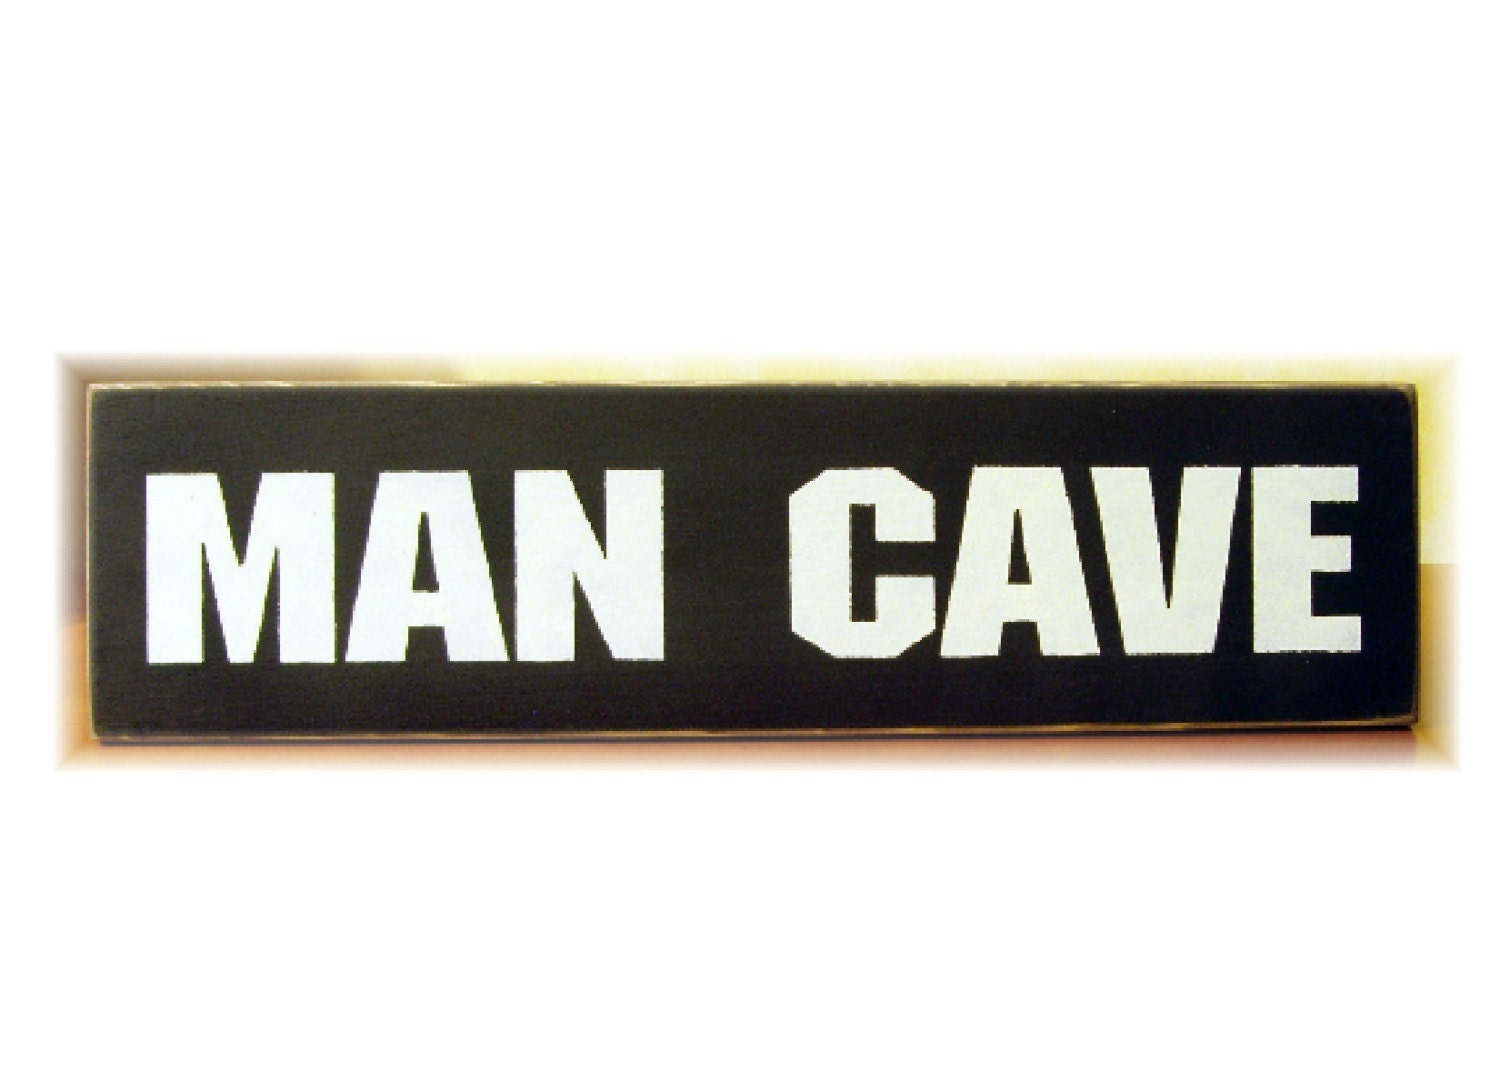 Man Cave Signs To Buy : Man cave primitive wood sign